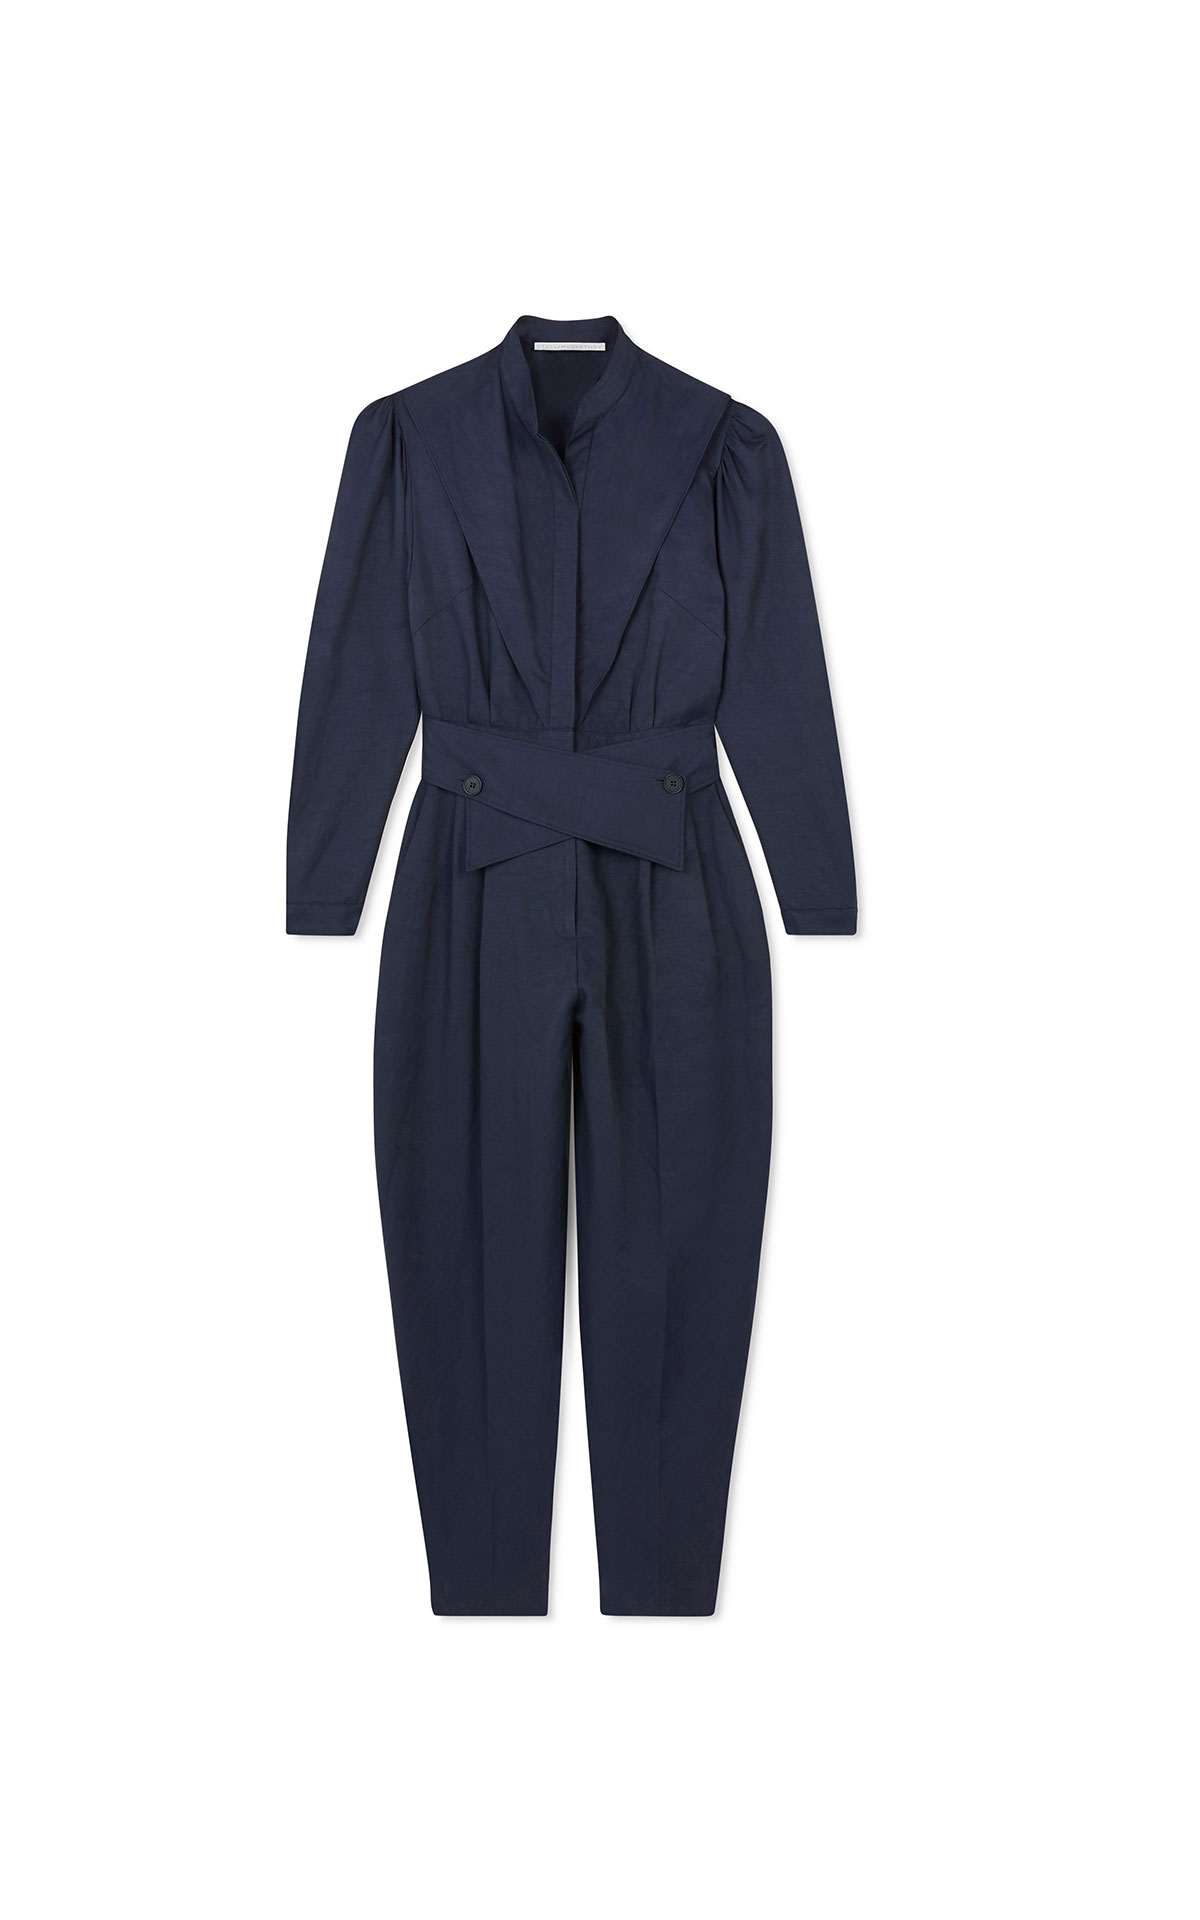 Stella McCartney Navy jumpsuit from Bicester Village